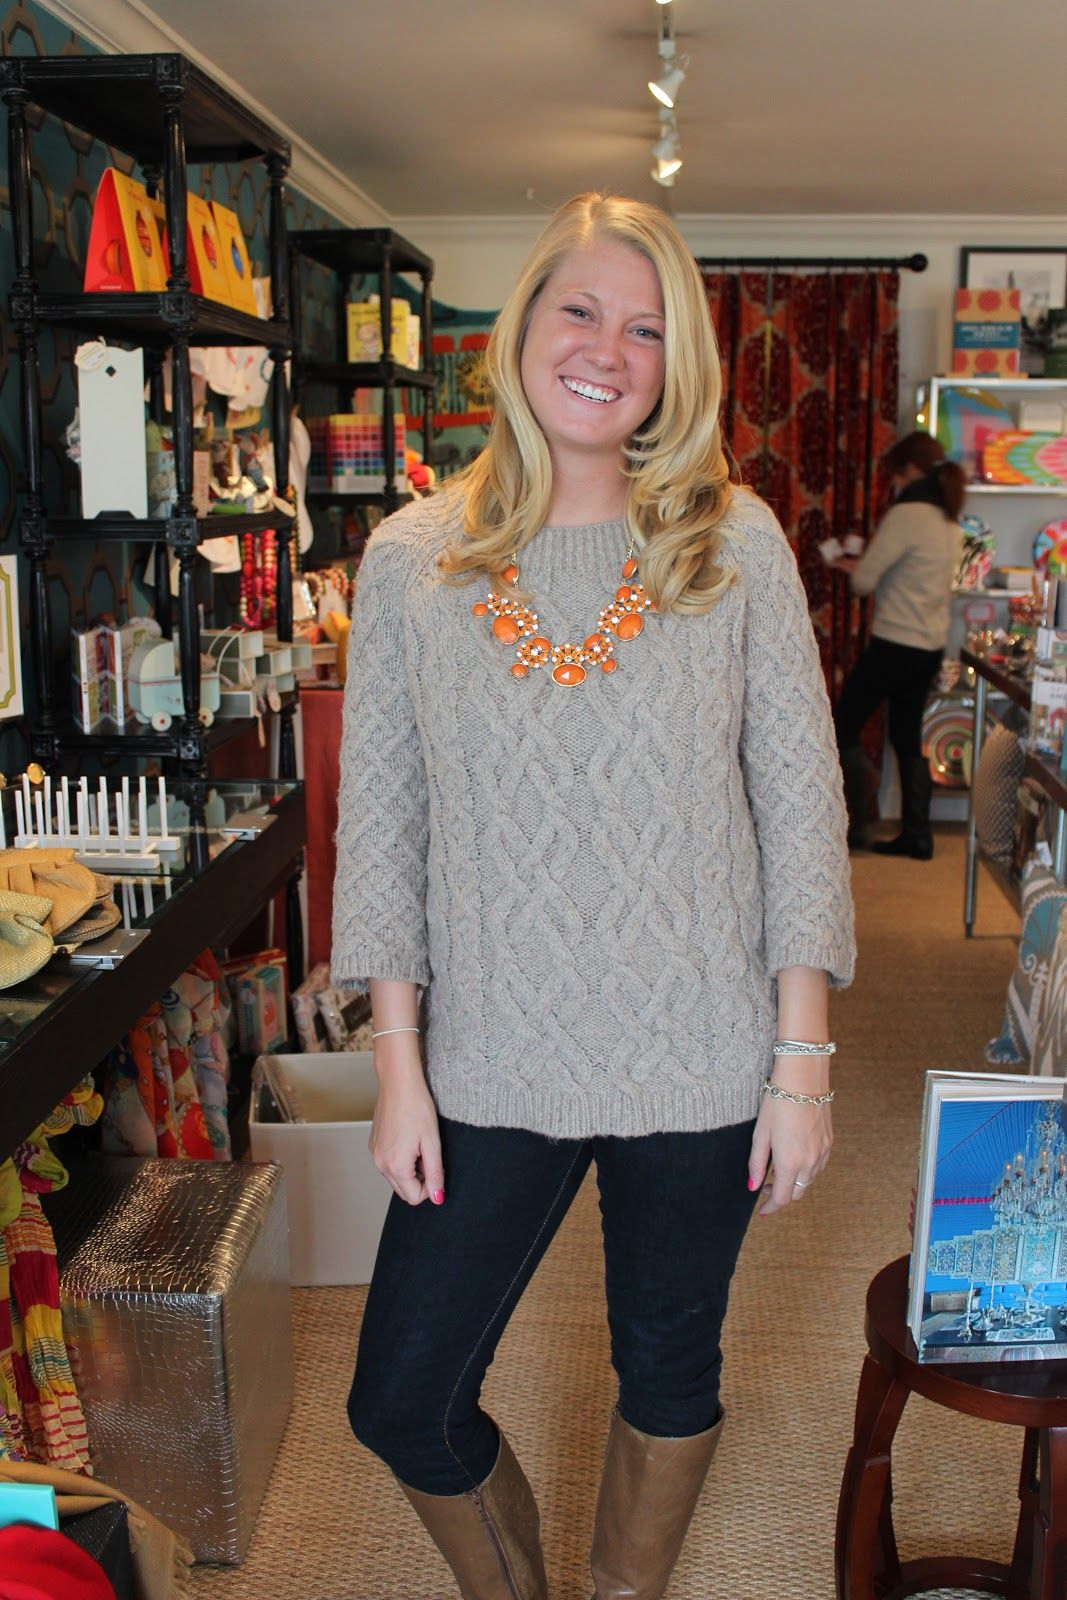 Baggy sweater and statement necklace